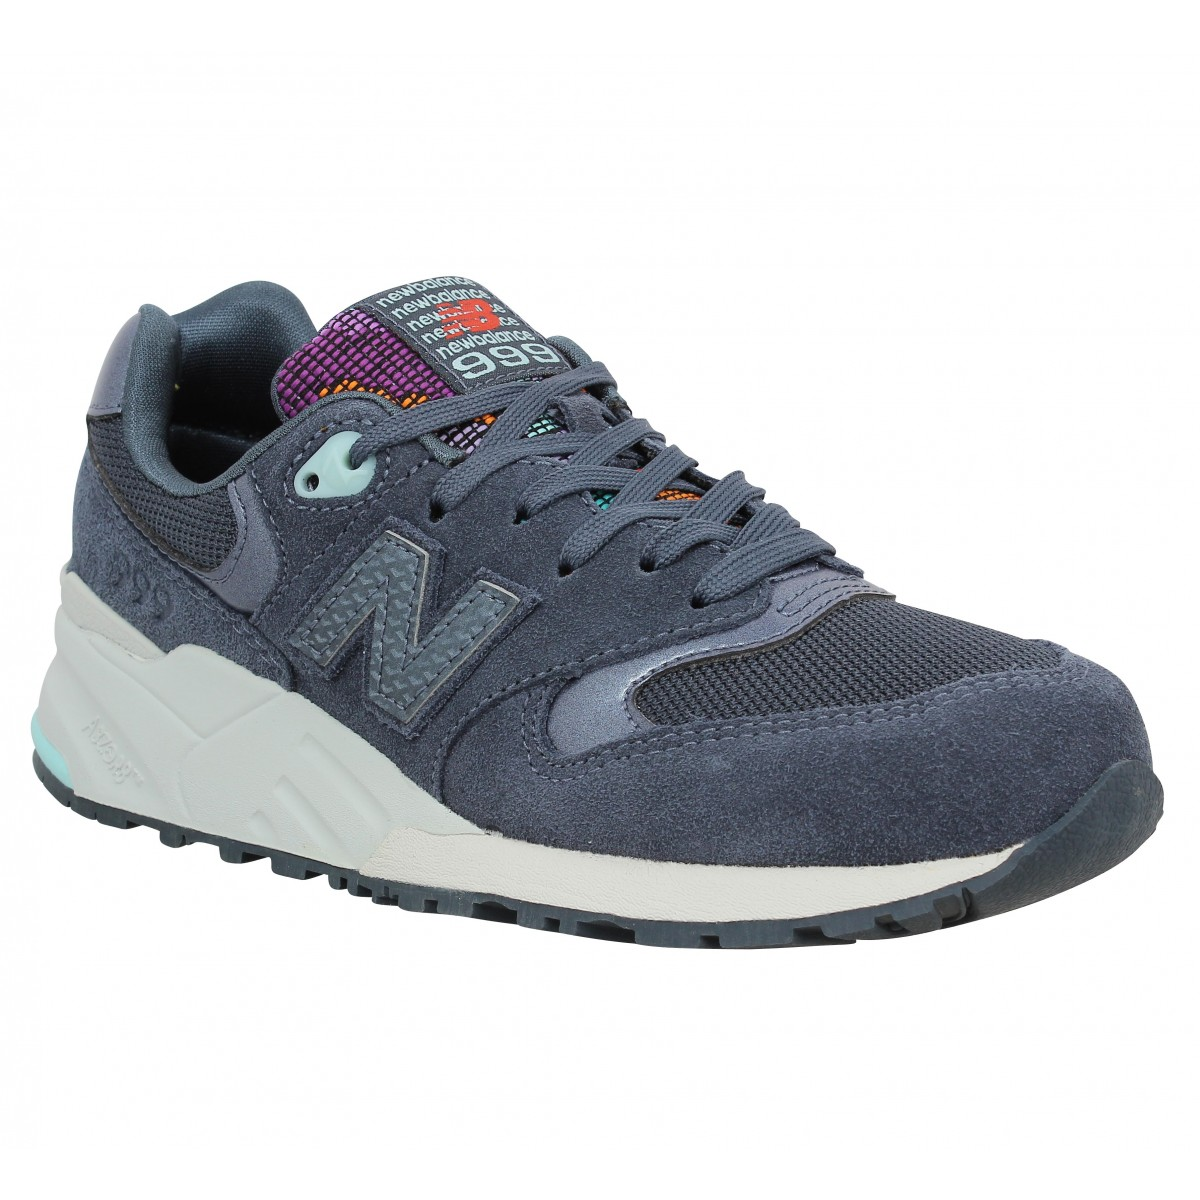 New Balance Marque 999-35-anthracite